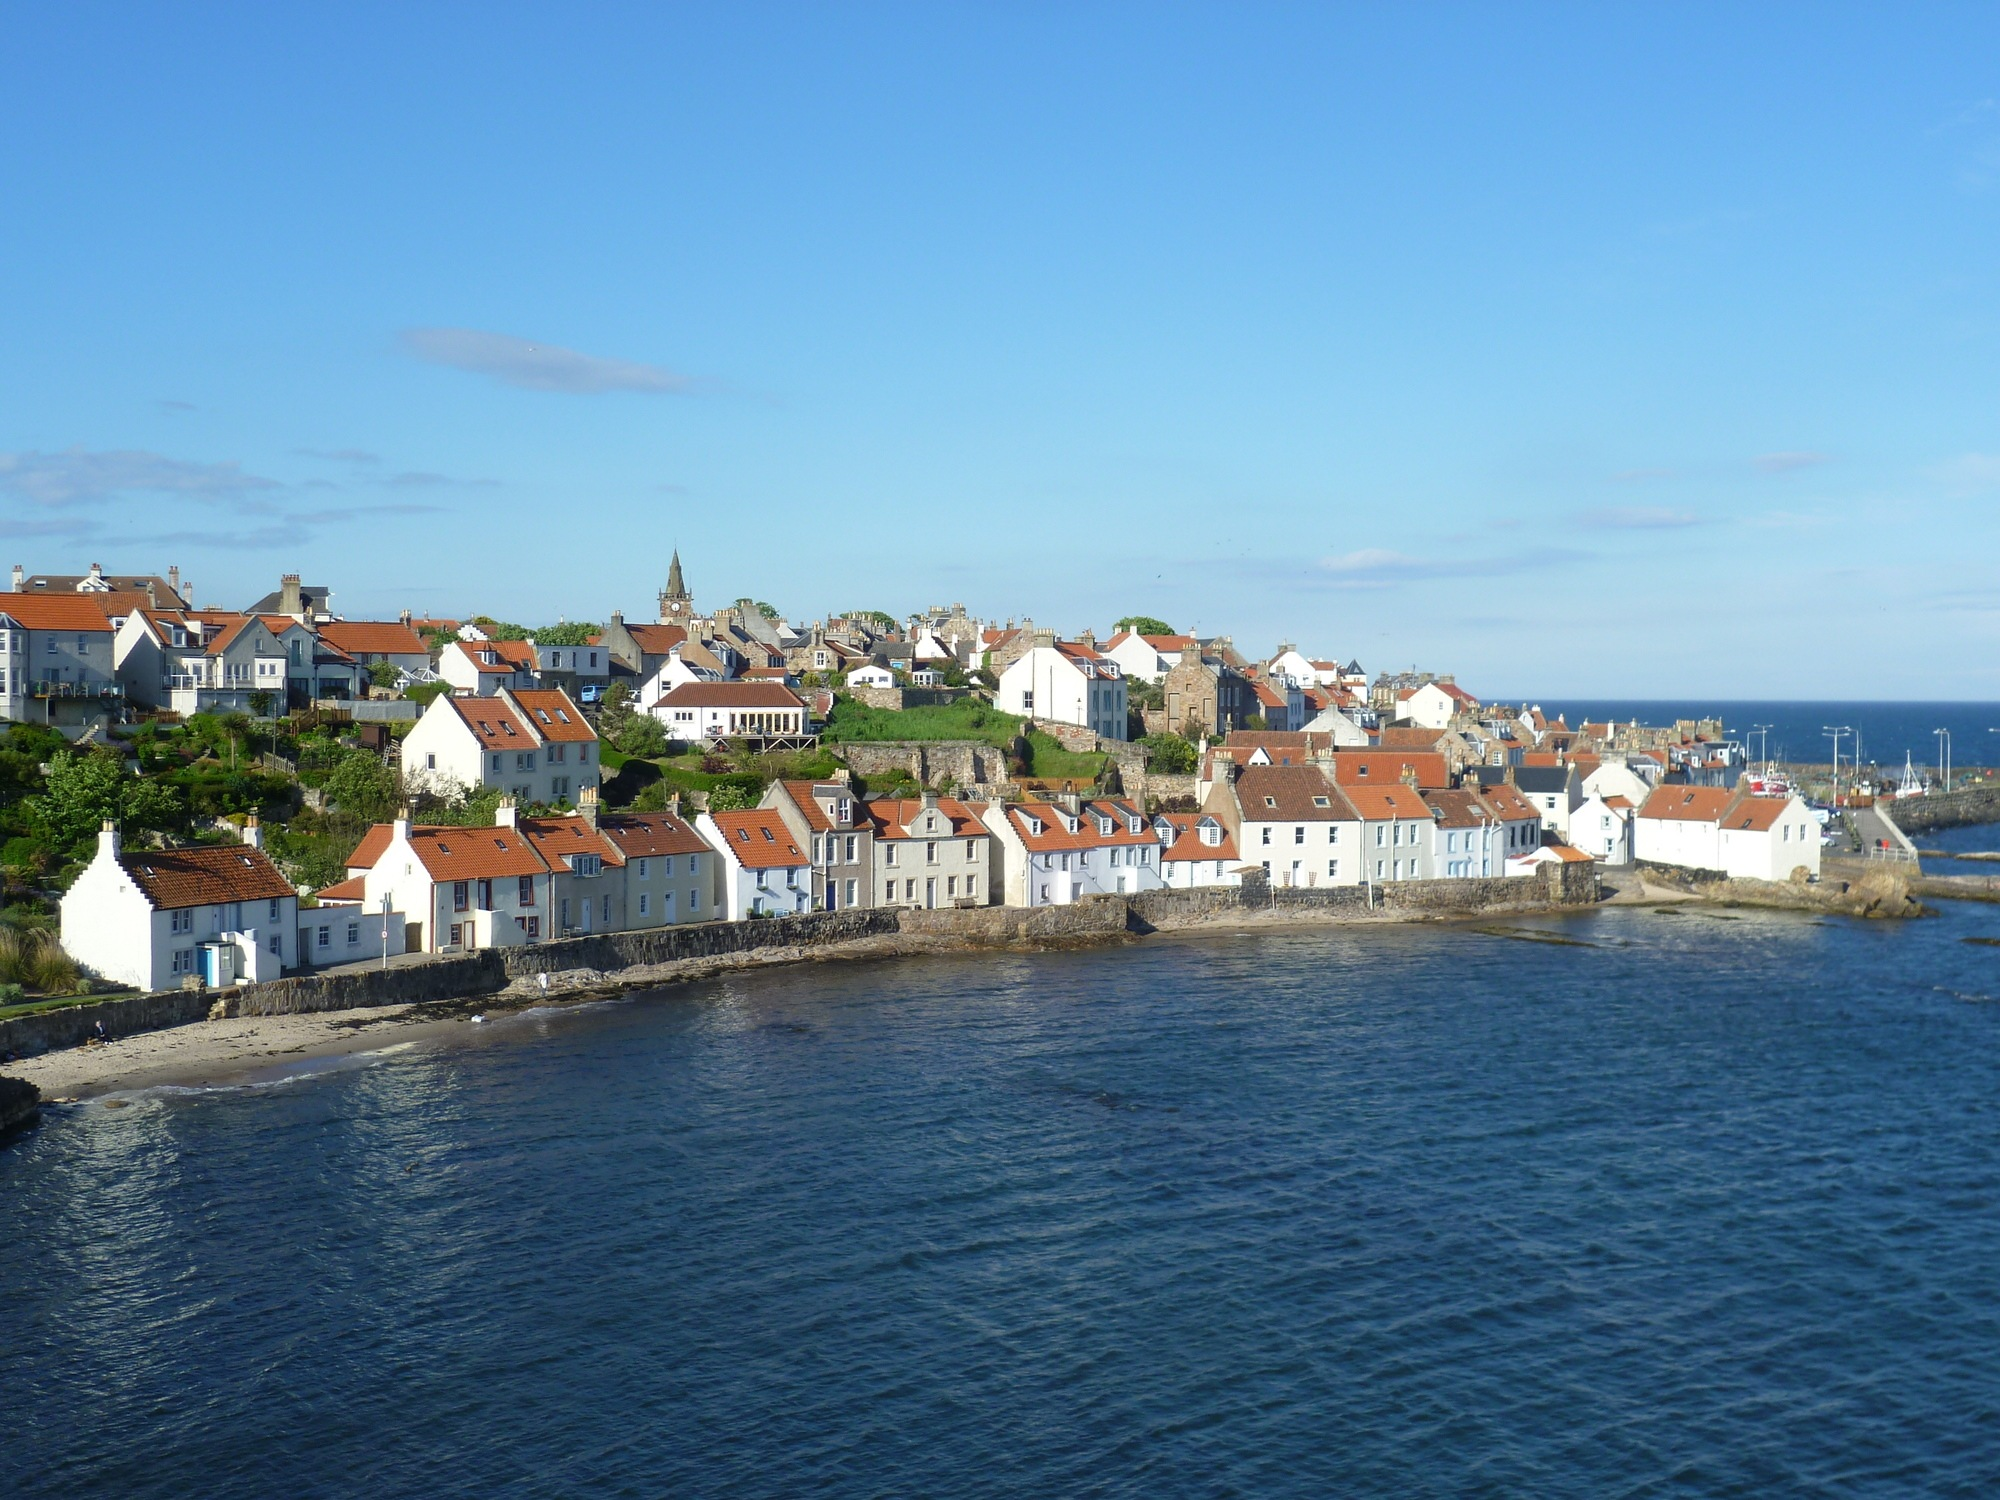 Best Seaside Towns in UK - Pittenweem, Scotland